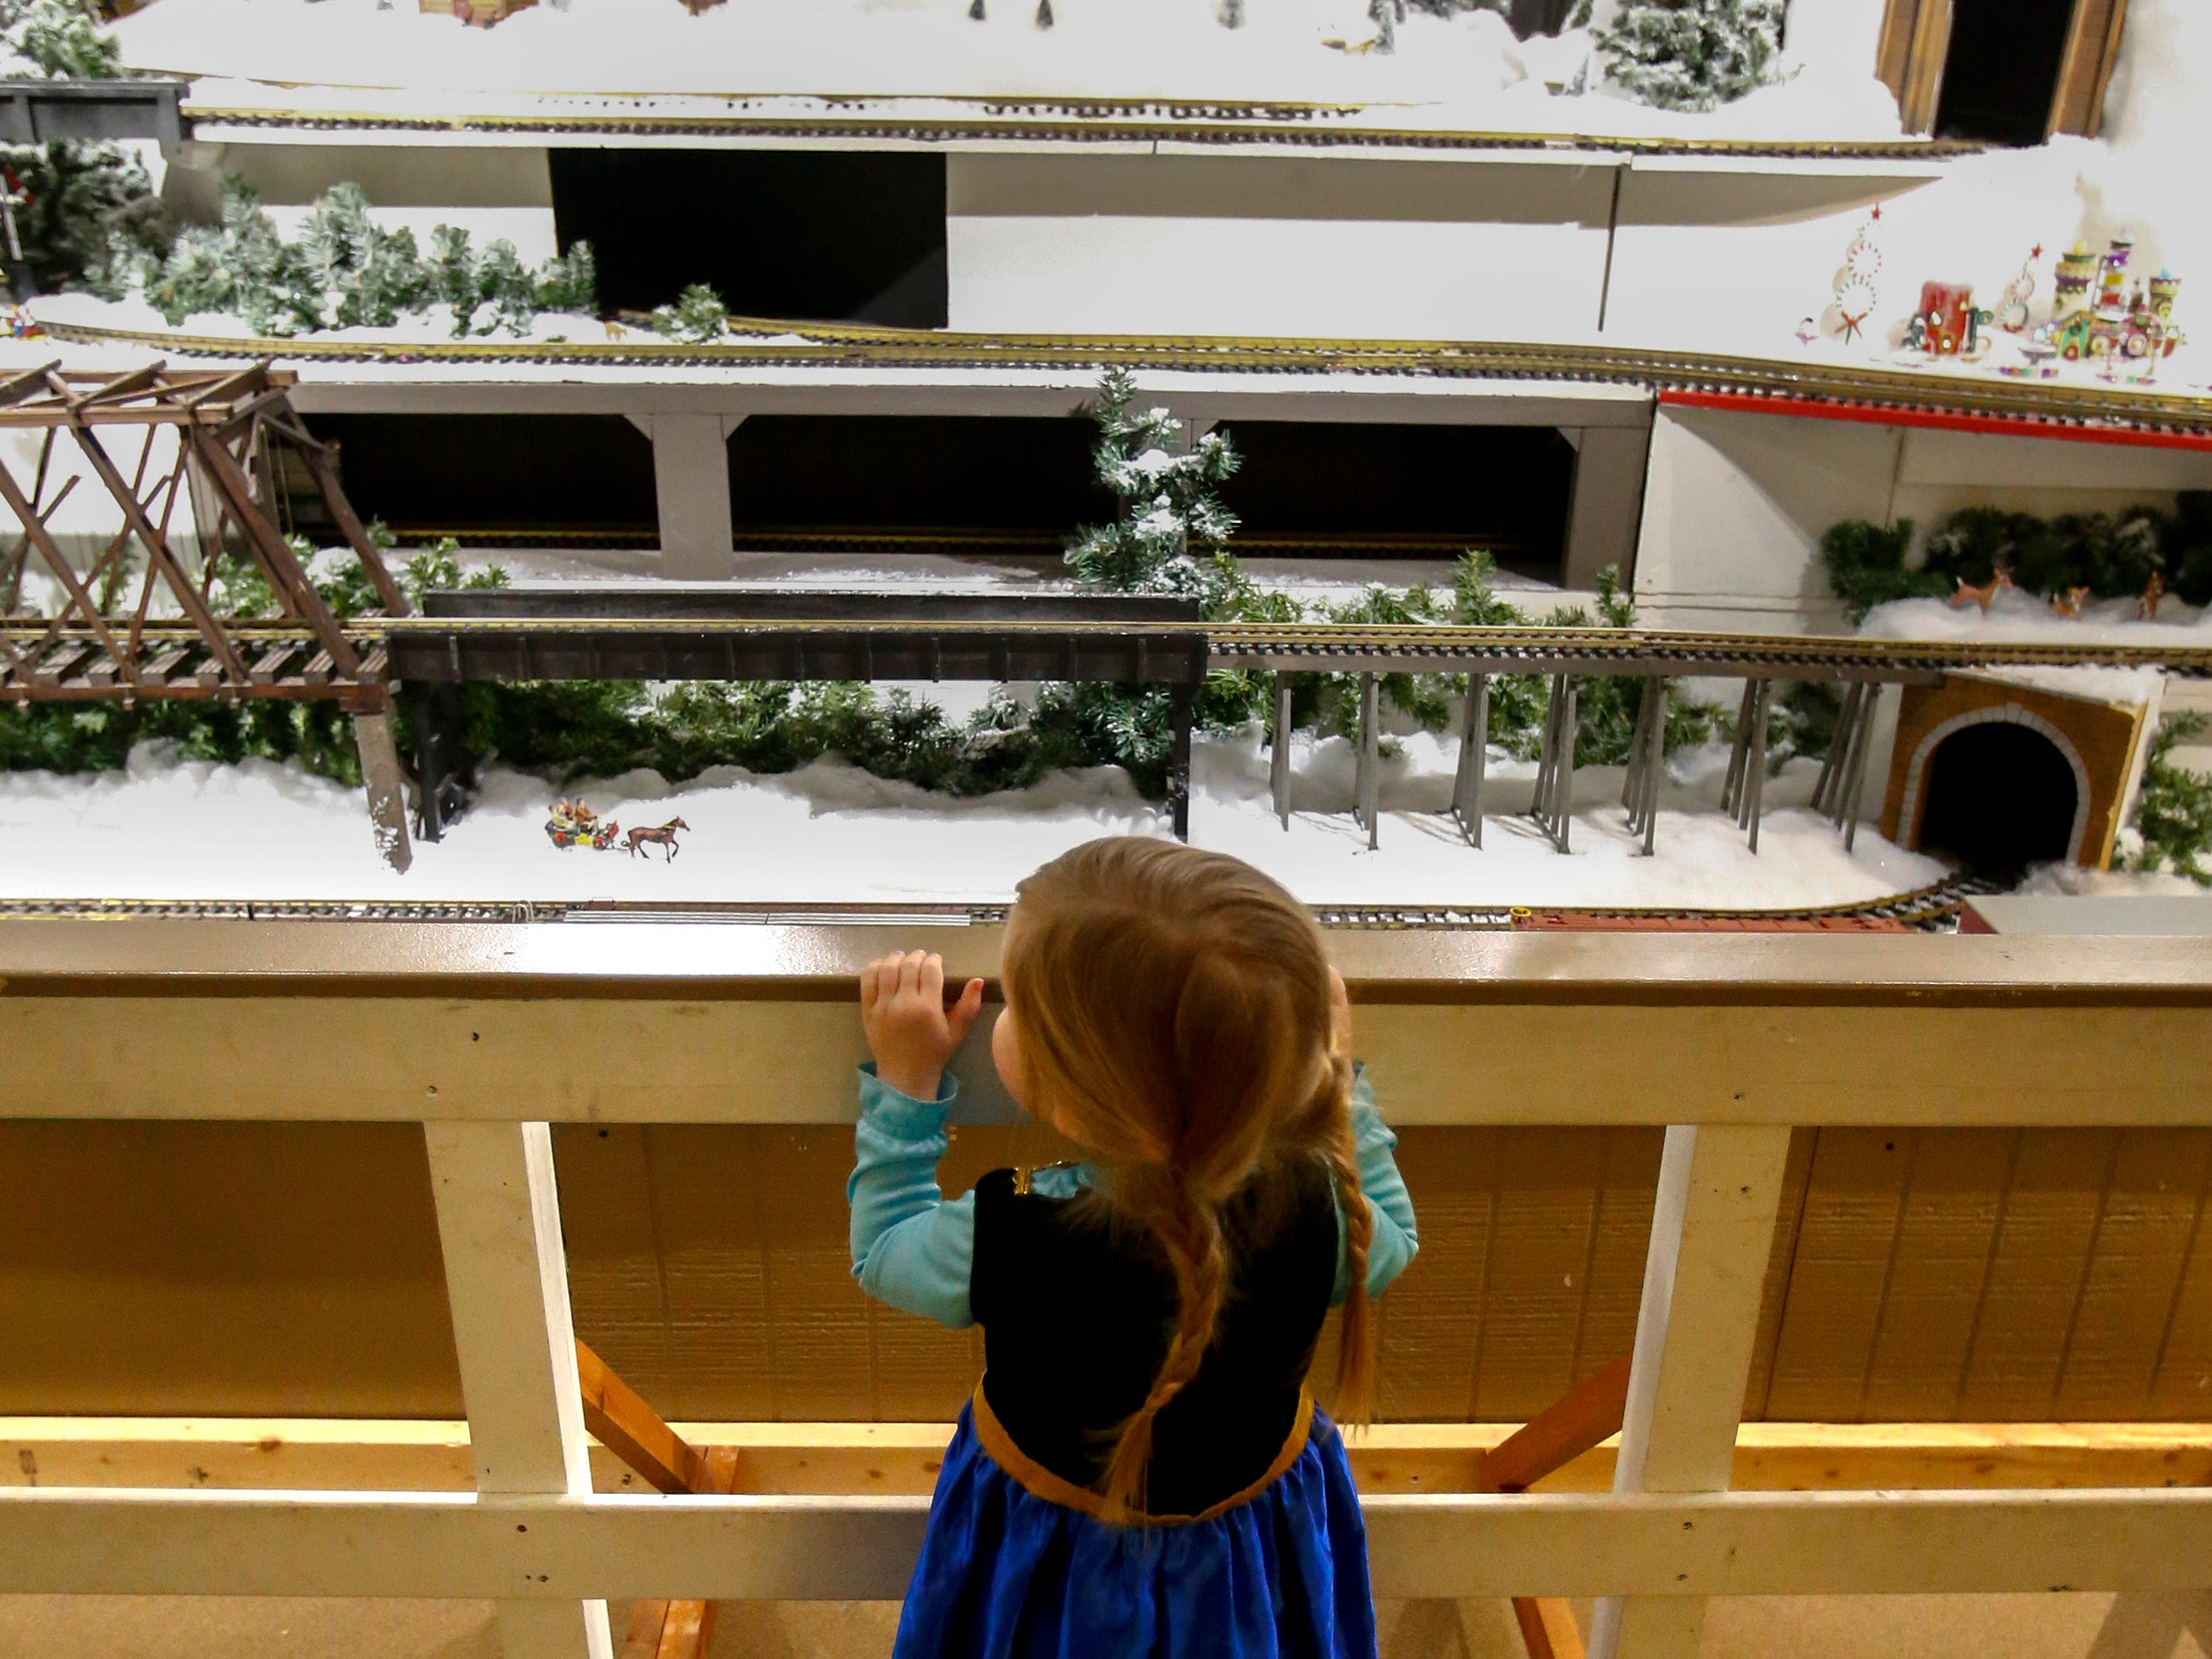 Eber Allen of Genesee looks at the five-tier running display of G-scale trains at the Country Christmas at the Ingleside Hotel in Pewaukee. The Country Christmas display is open 5 p.m. to 9 p.m. Sundays through Thursdays, and 5 p.m. to 10 p.m. Friday and Saturdays.